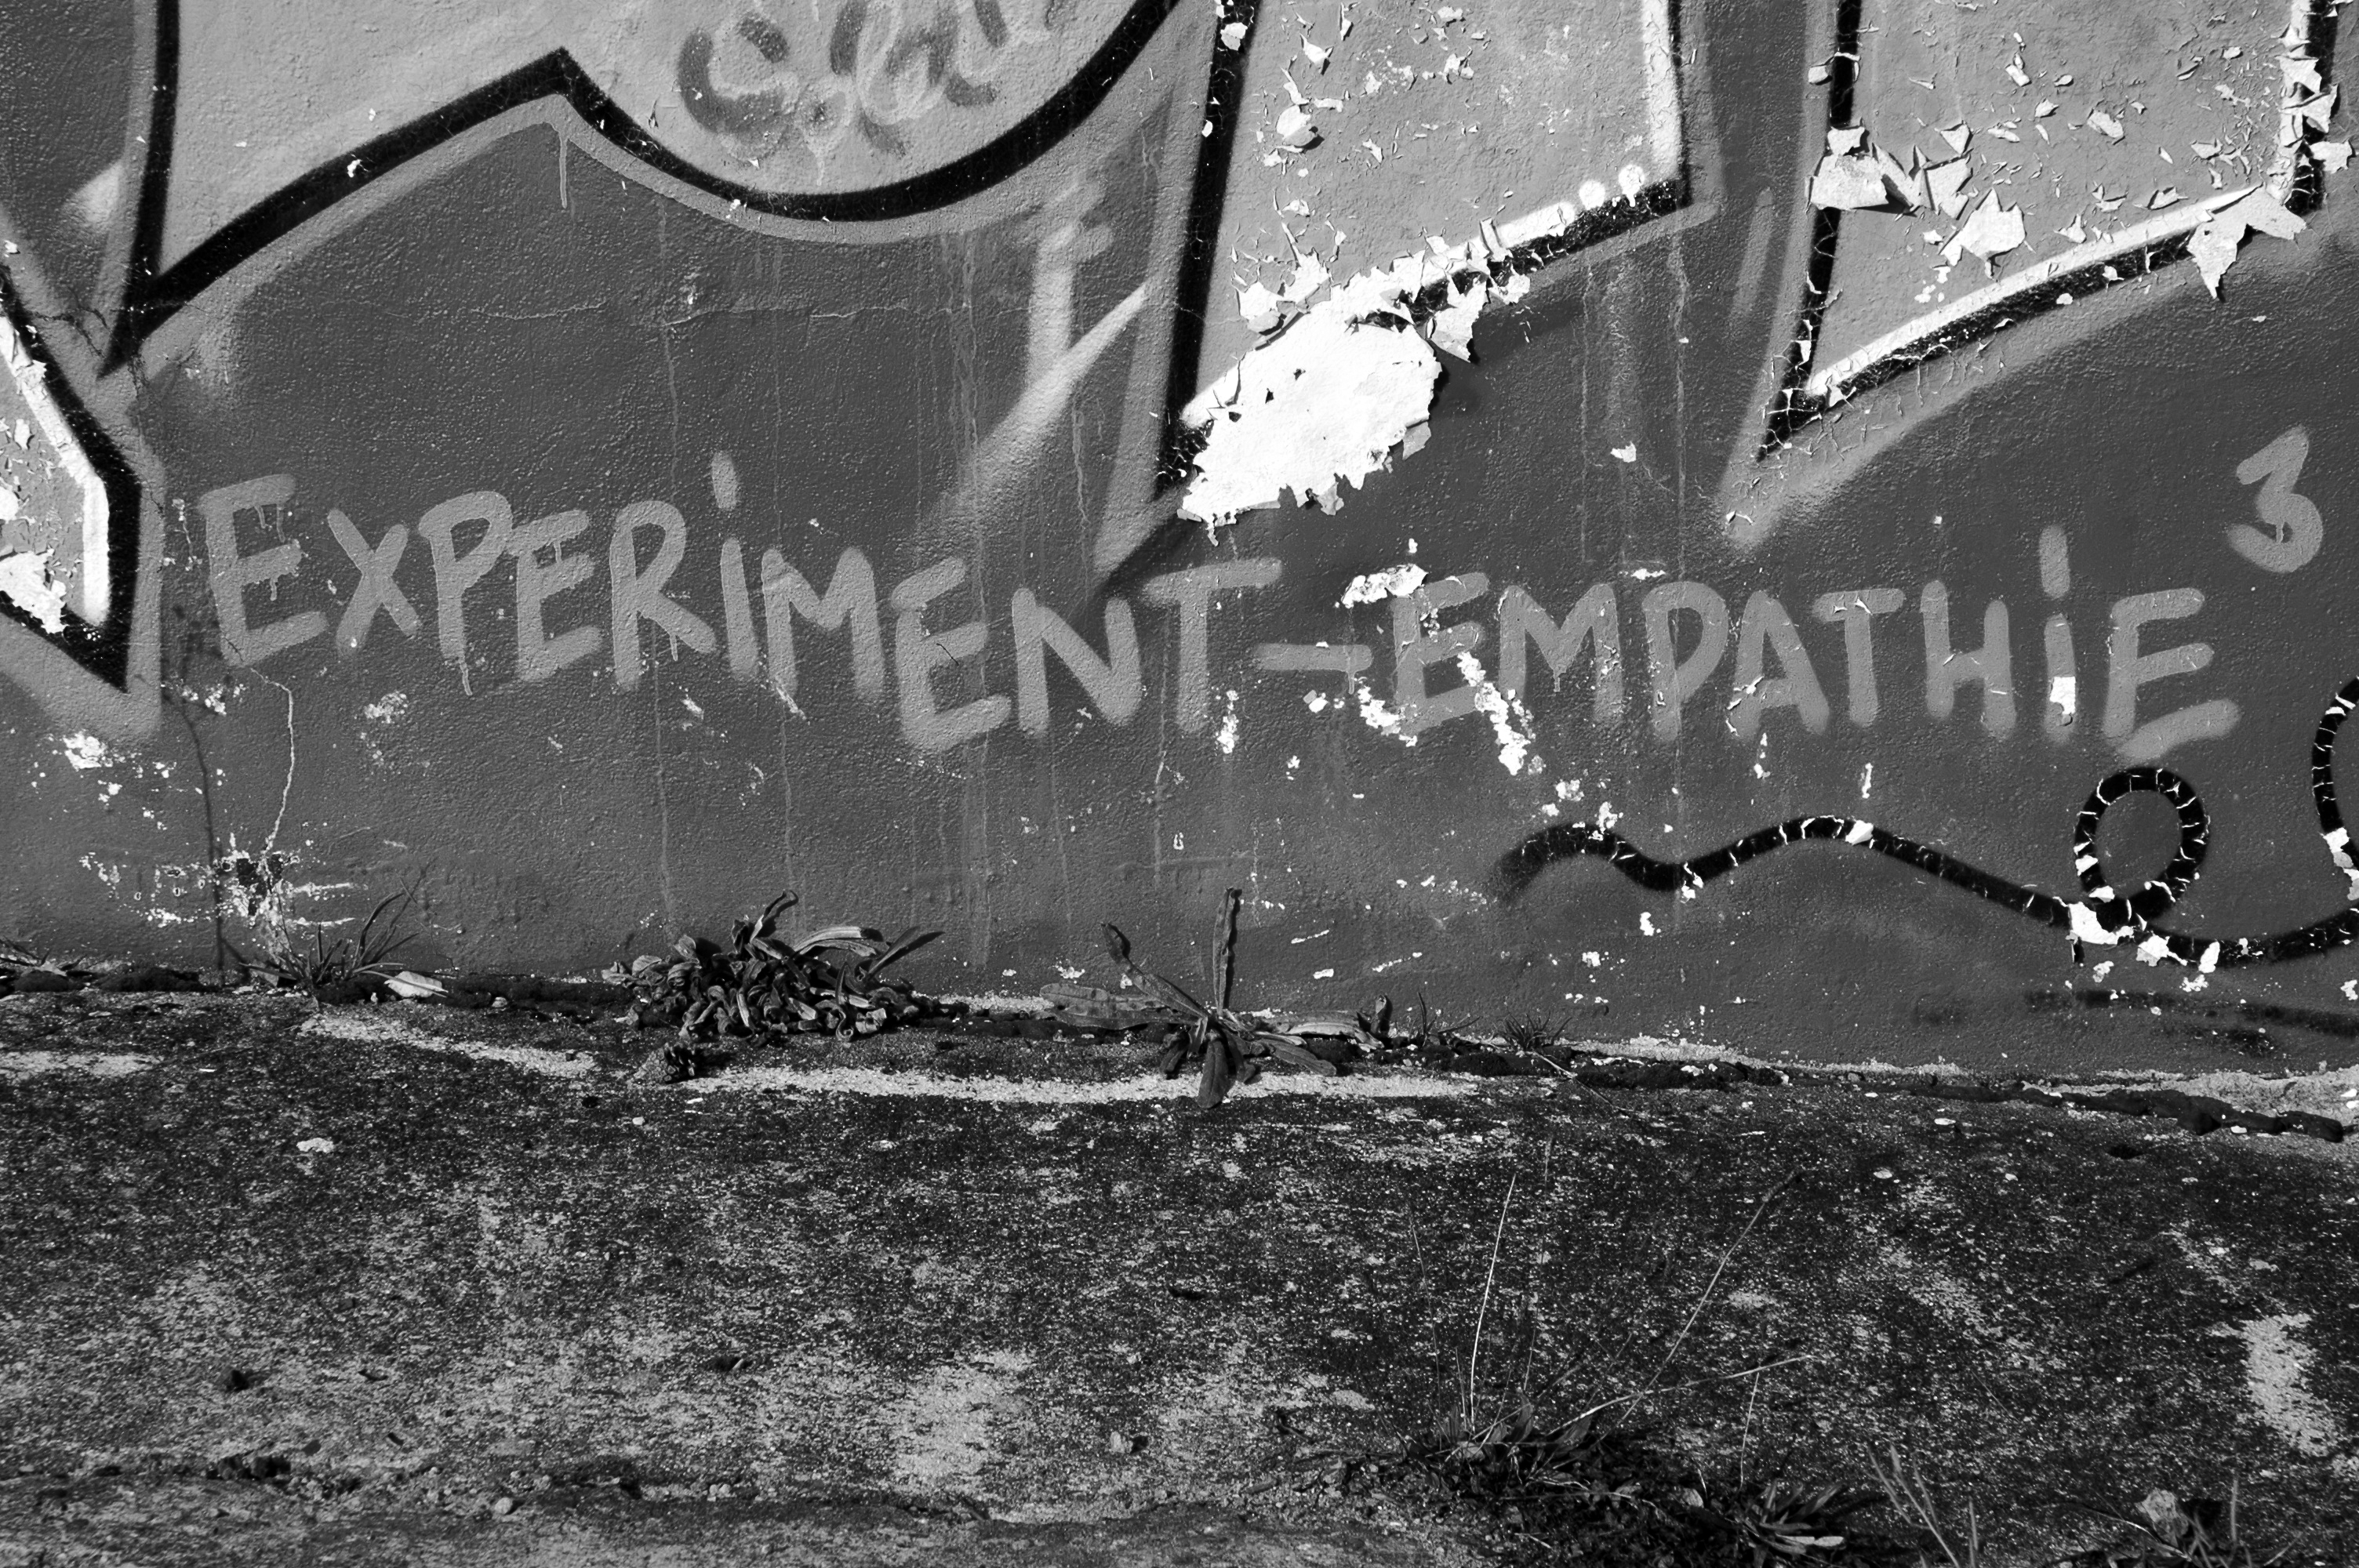 experiment-empathy-graffiti_bw